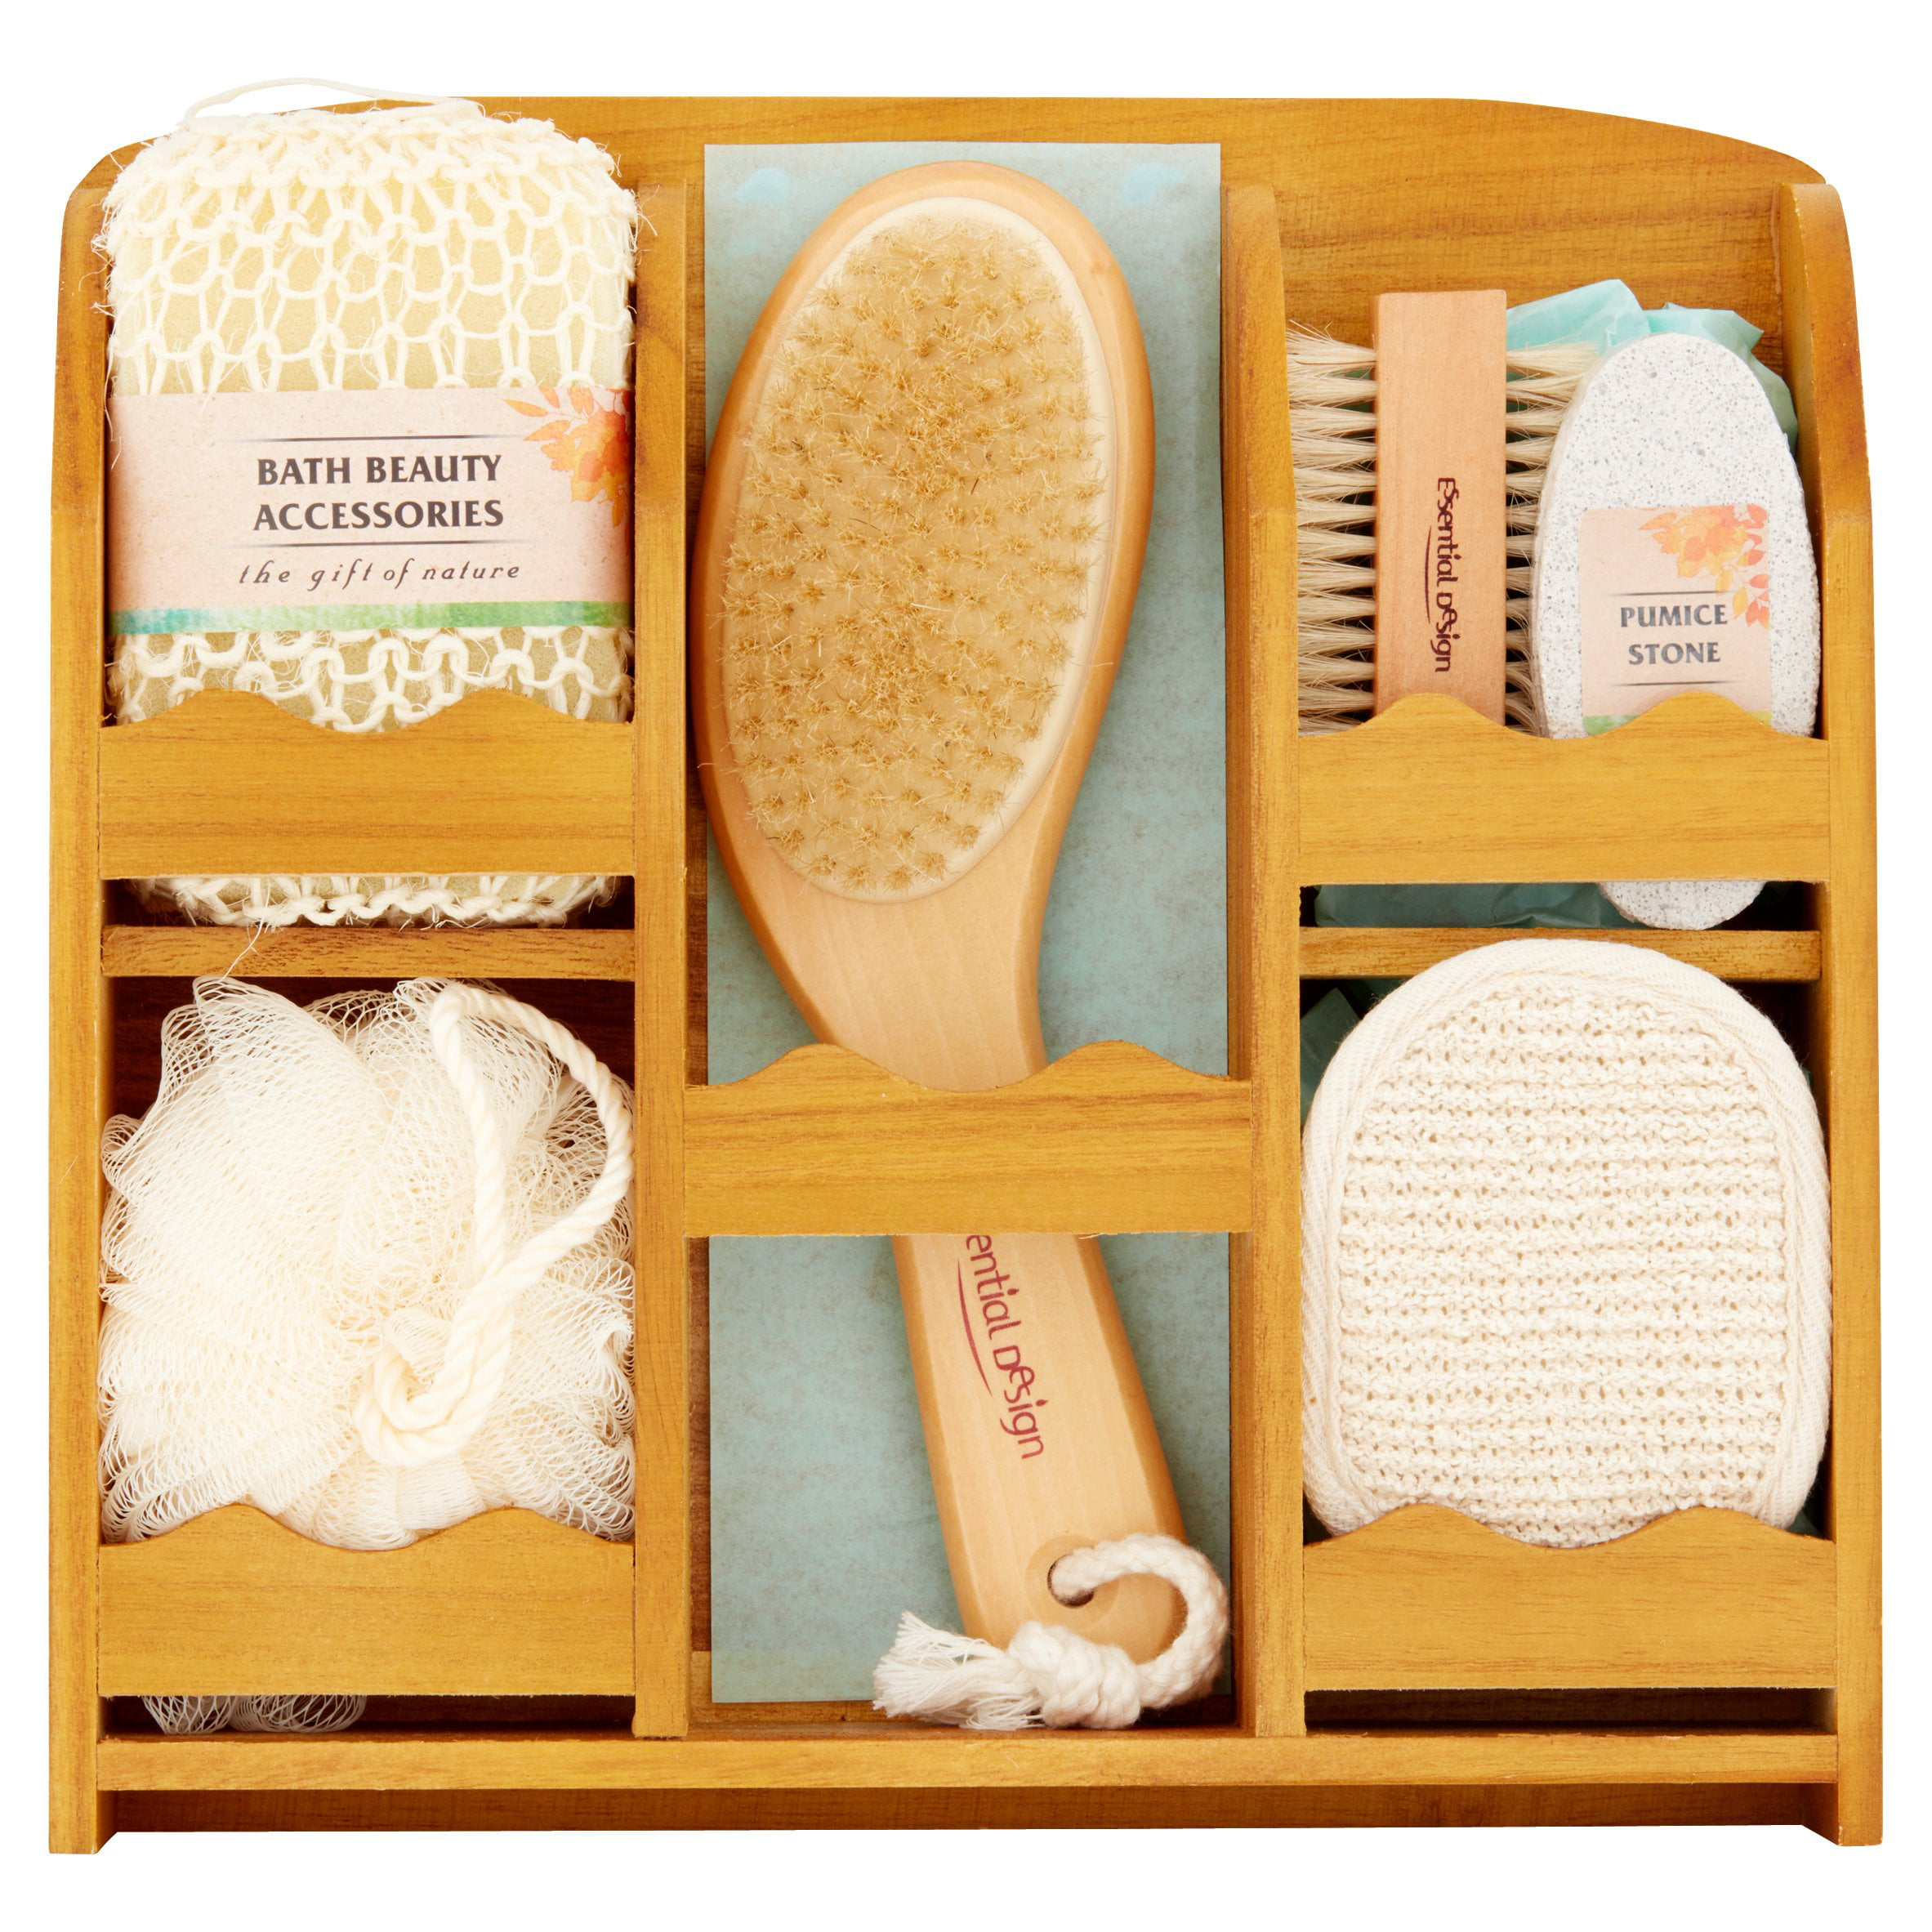 Essential Design Bath Set in Wooden Crate, 7 pc by Wal-Mart Stores, Inc.